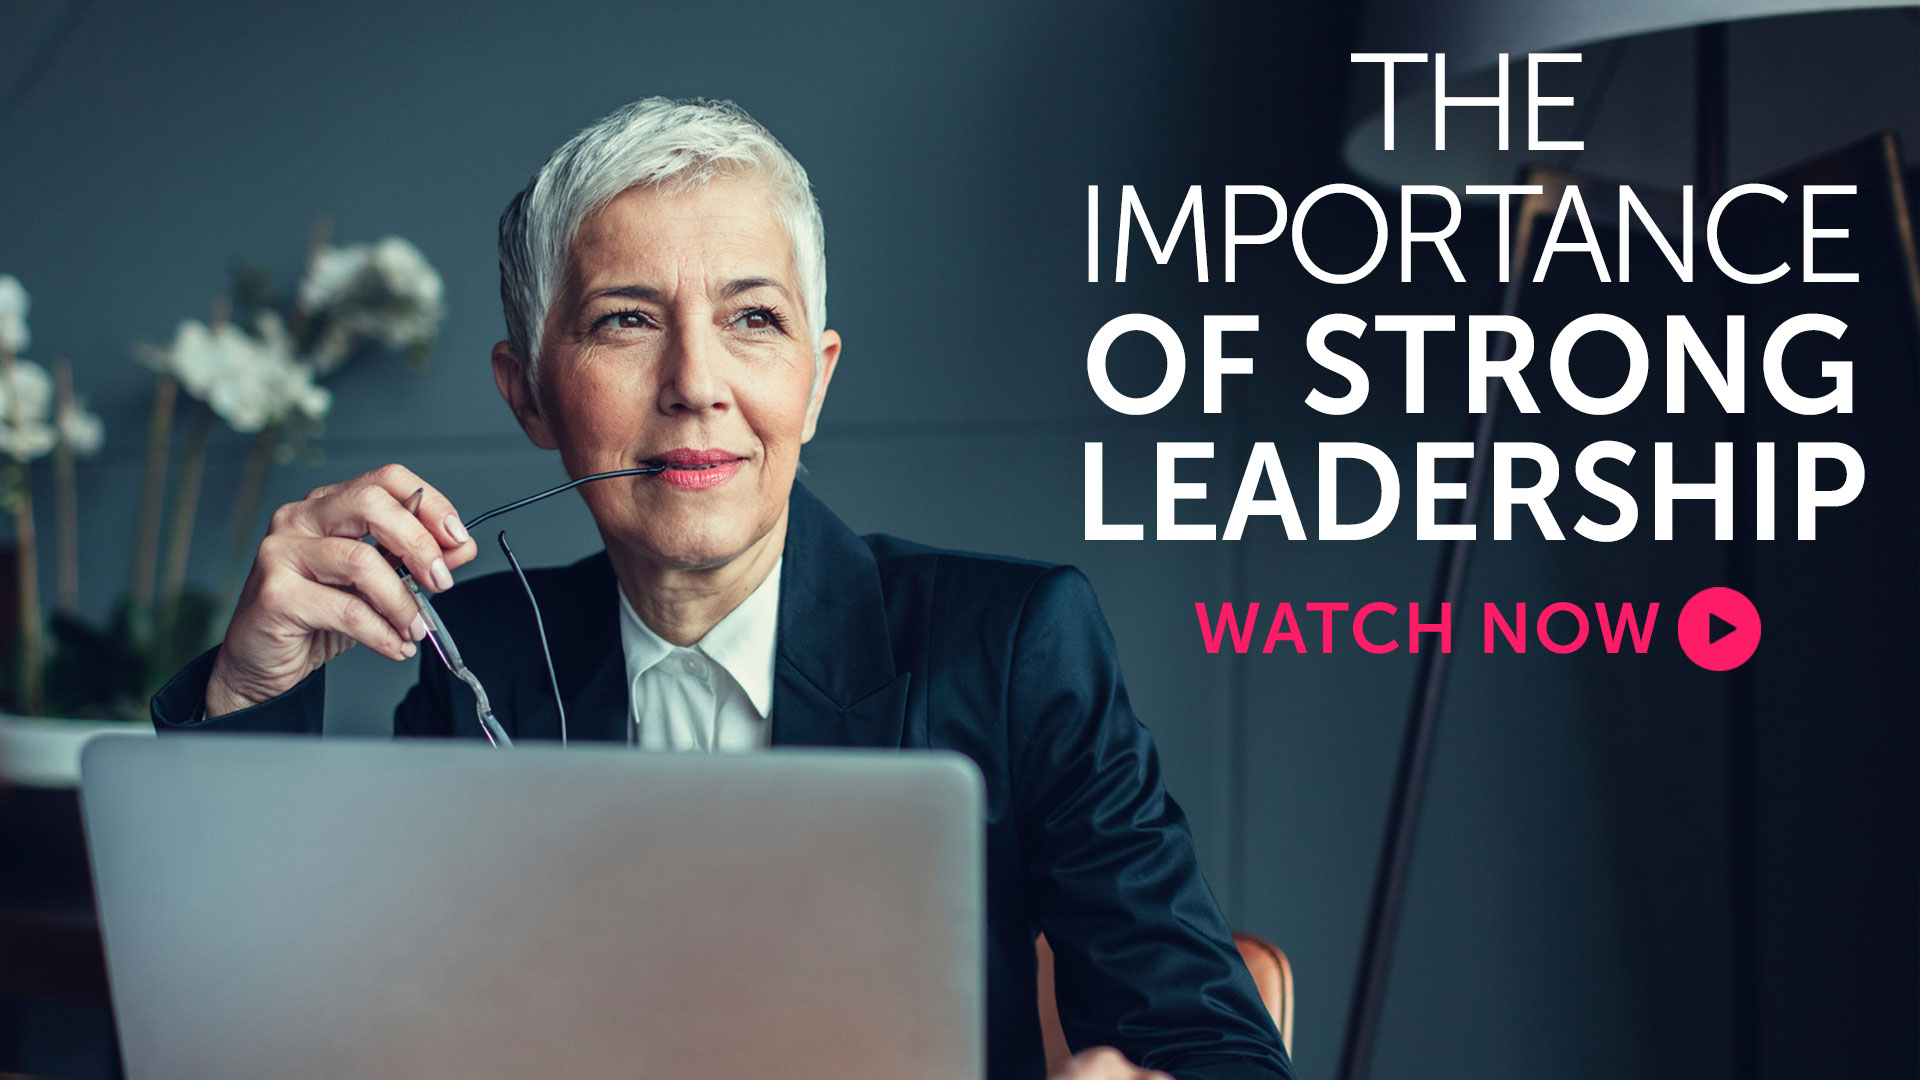 Briefing: The importance of strong leadership